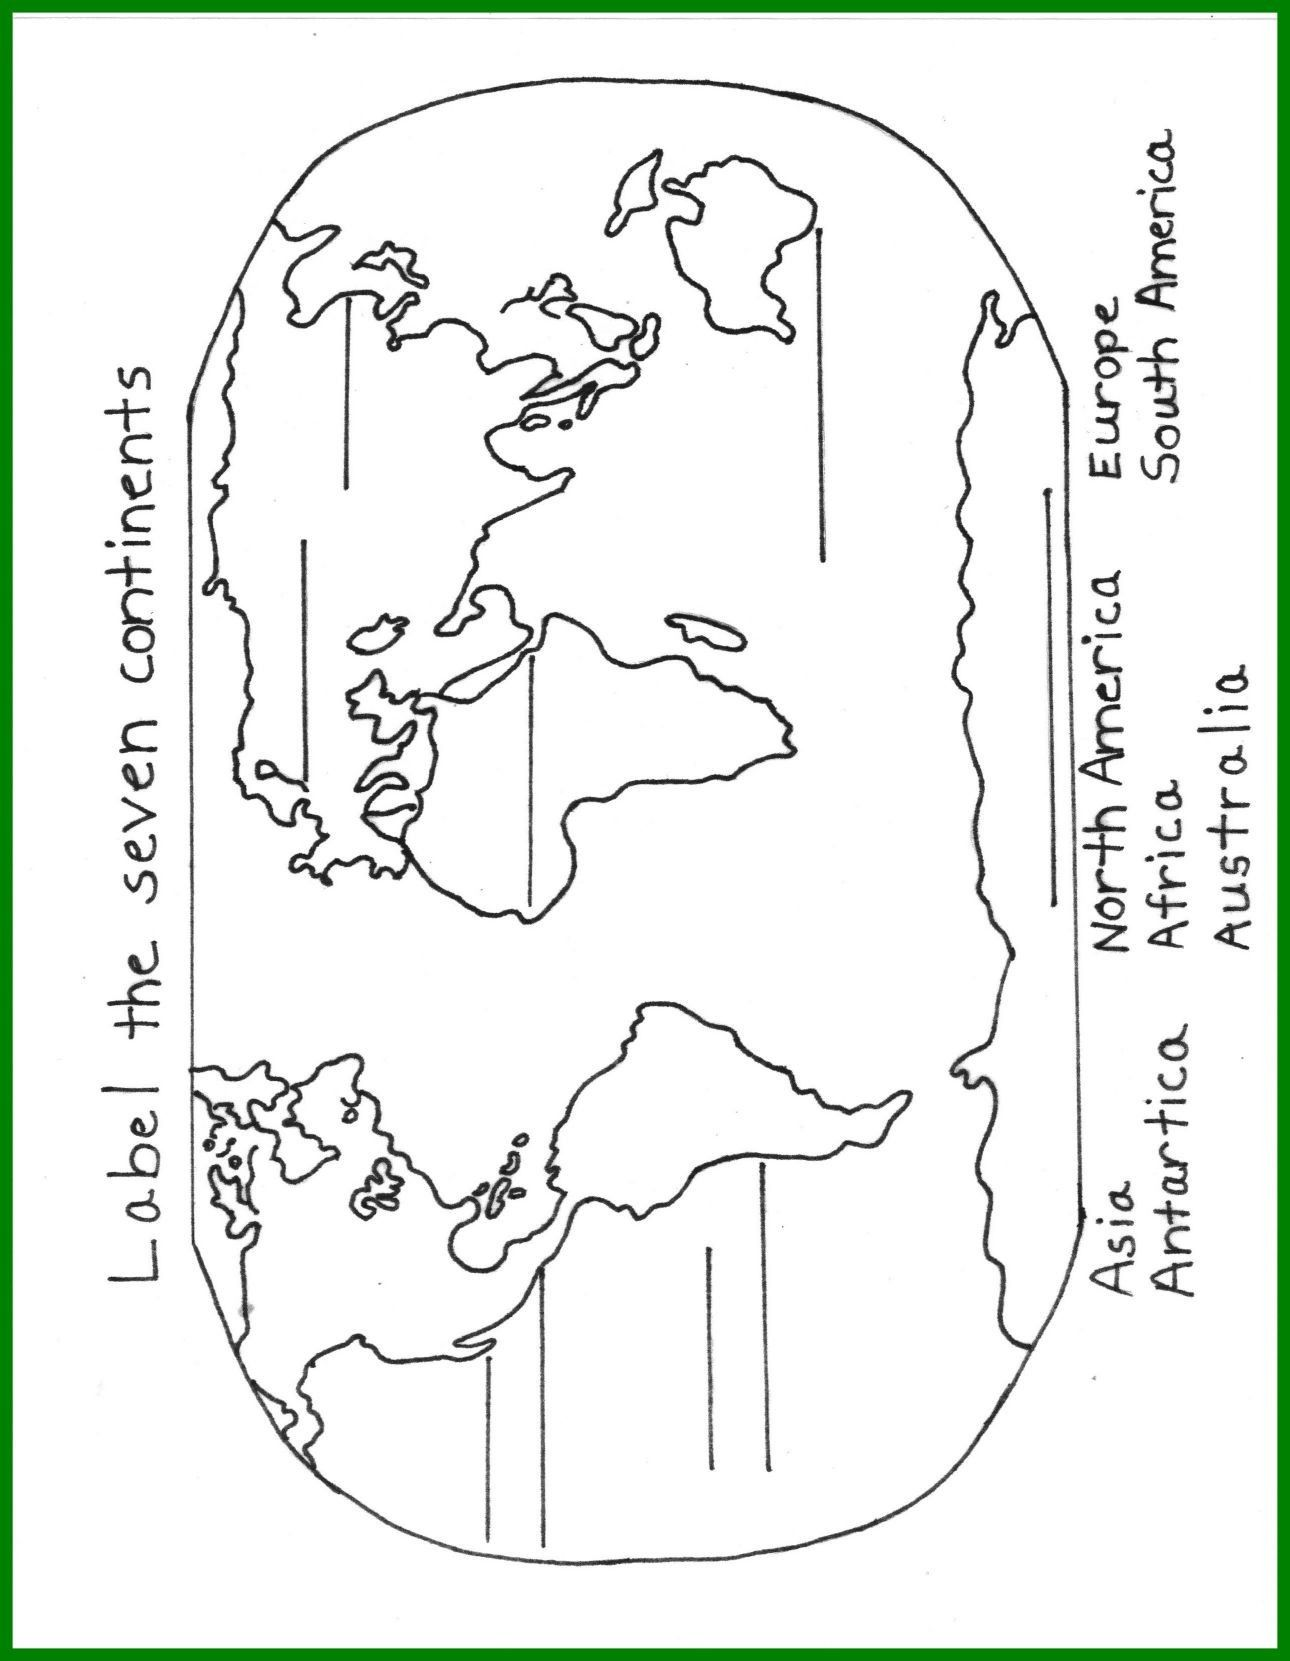 Continents Coloring Page 7 Continents Coloring Page Wiim Coloring